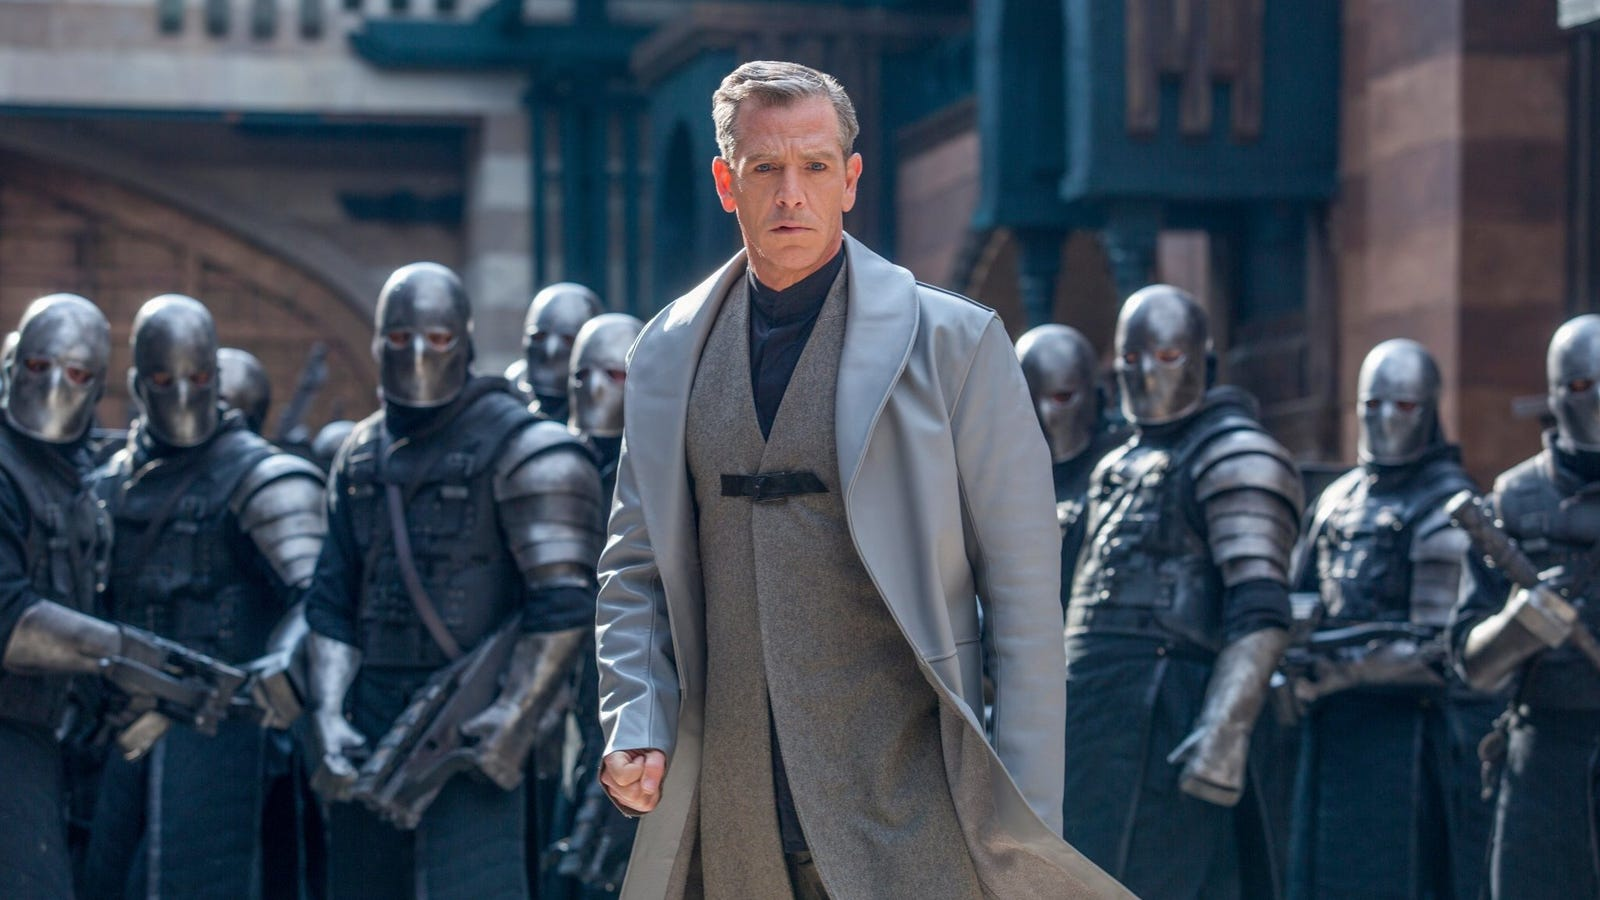 Looks Like Ben Mendelsohn Wandered Off The Rogue One Set And